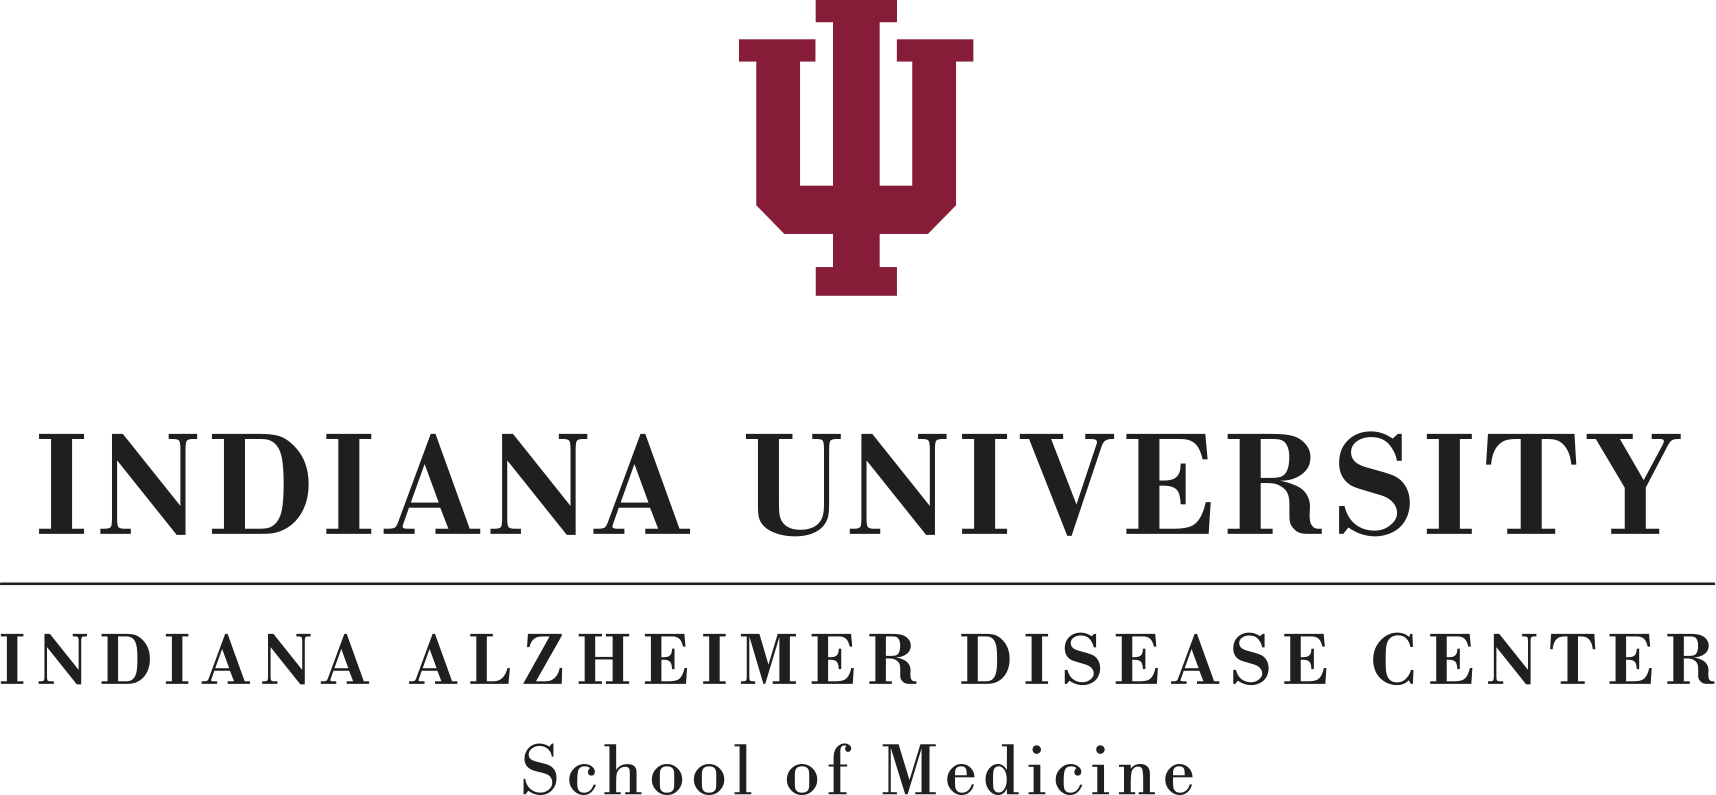 Indiana University Alzheimer Disease Center